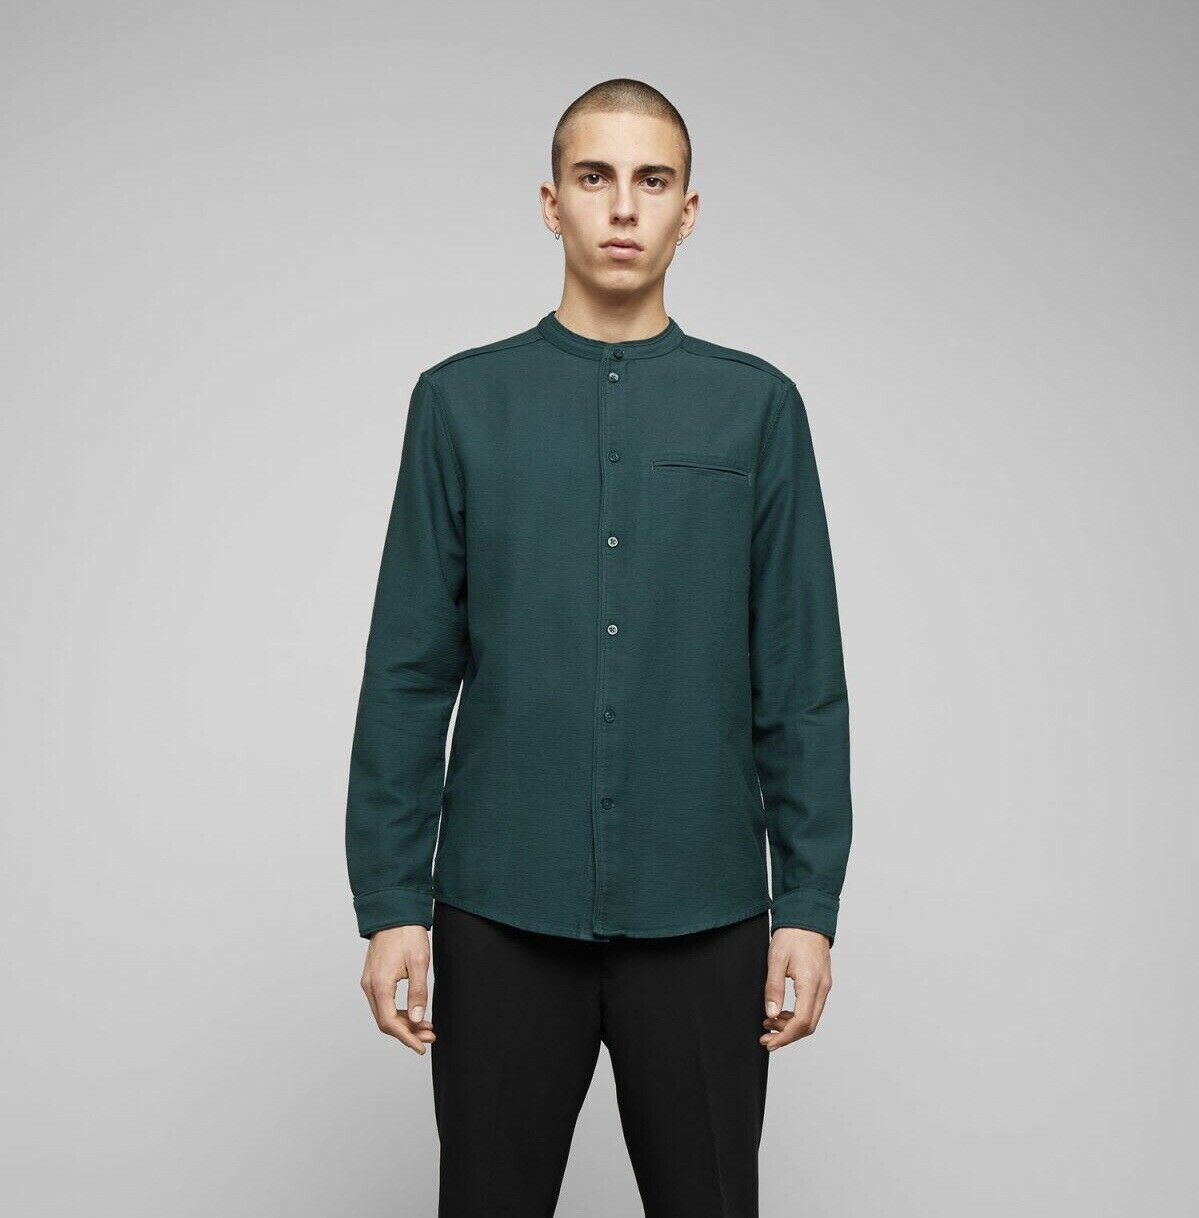 Green Mandarin Collar Shirt For Mens